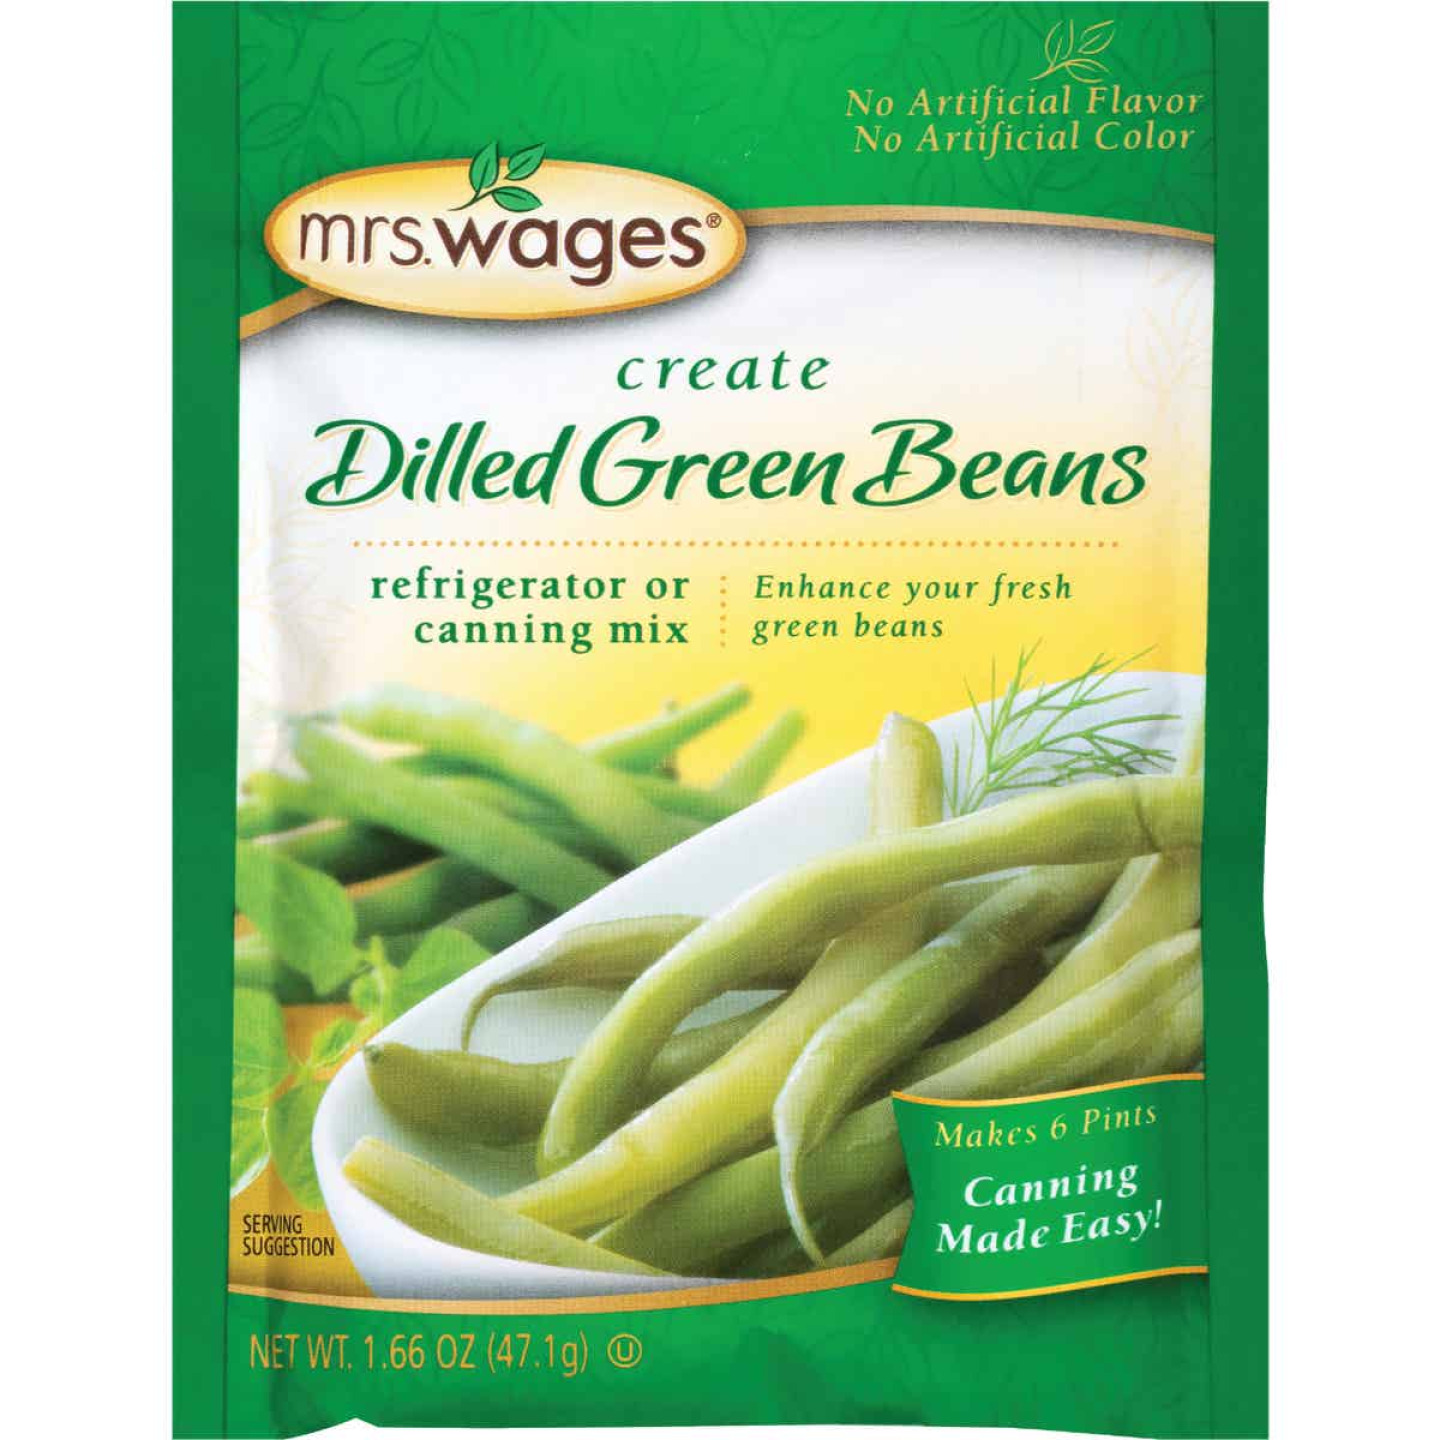 Mrs. Wages 1.7 Oz. Dilled Green Beans Refrigerator Or Canning Pickling Mix Image 1